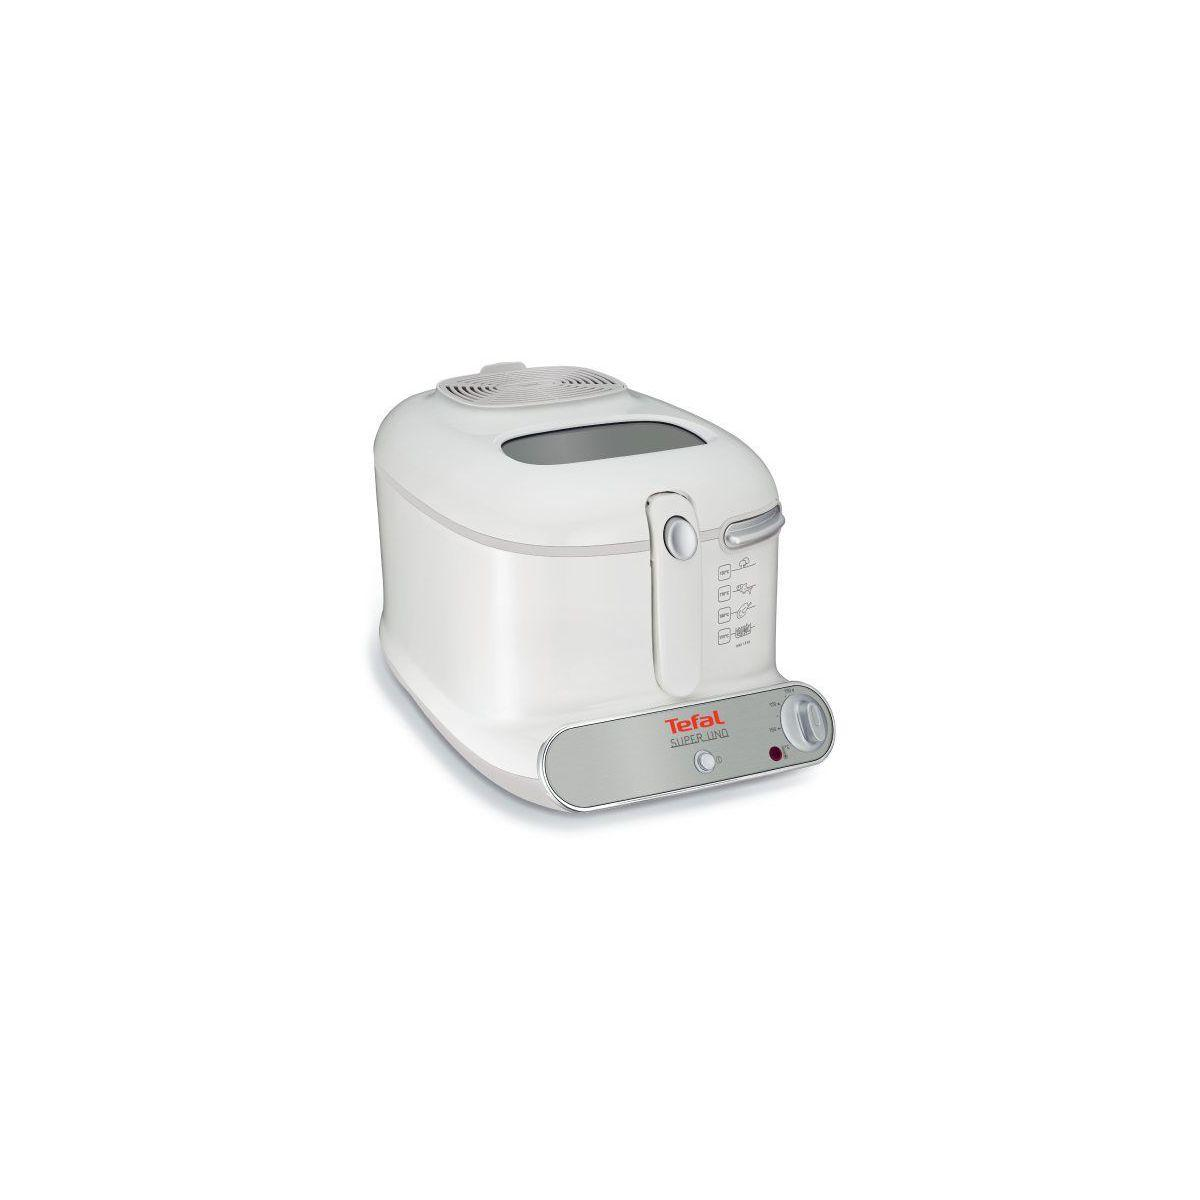 Friteuse tefal super uno blanche fr30013